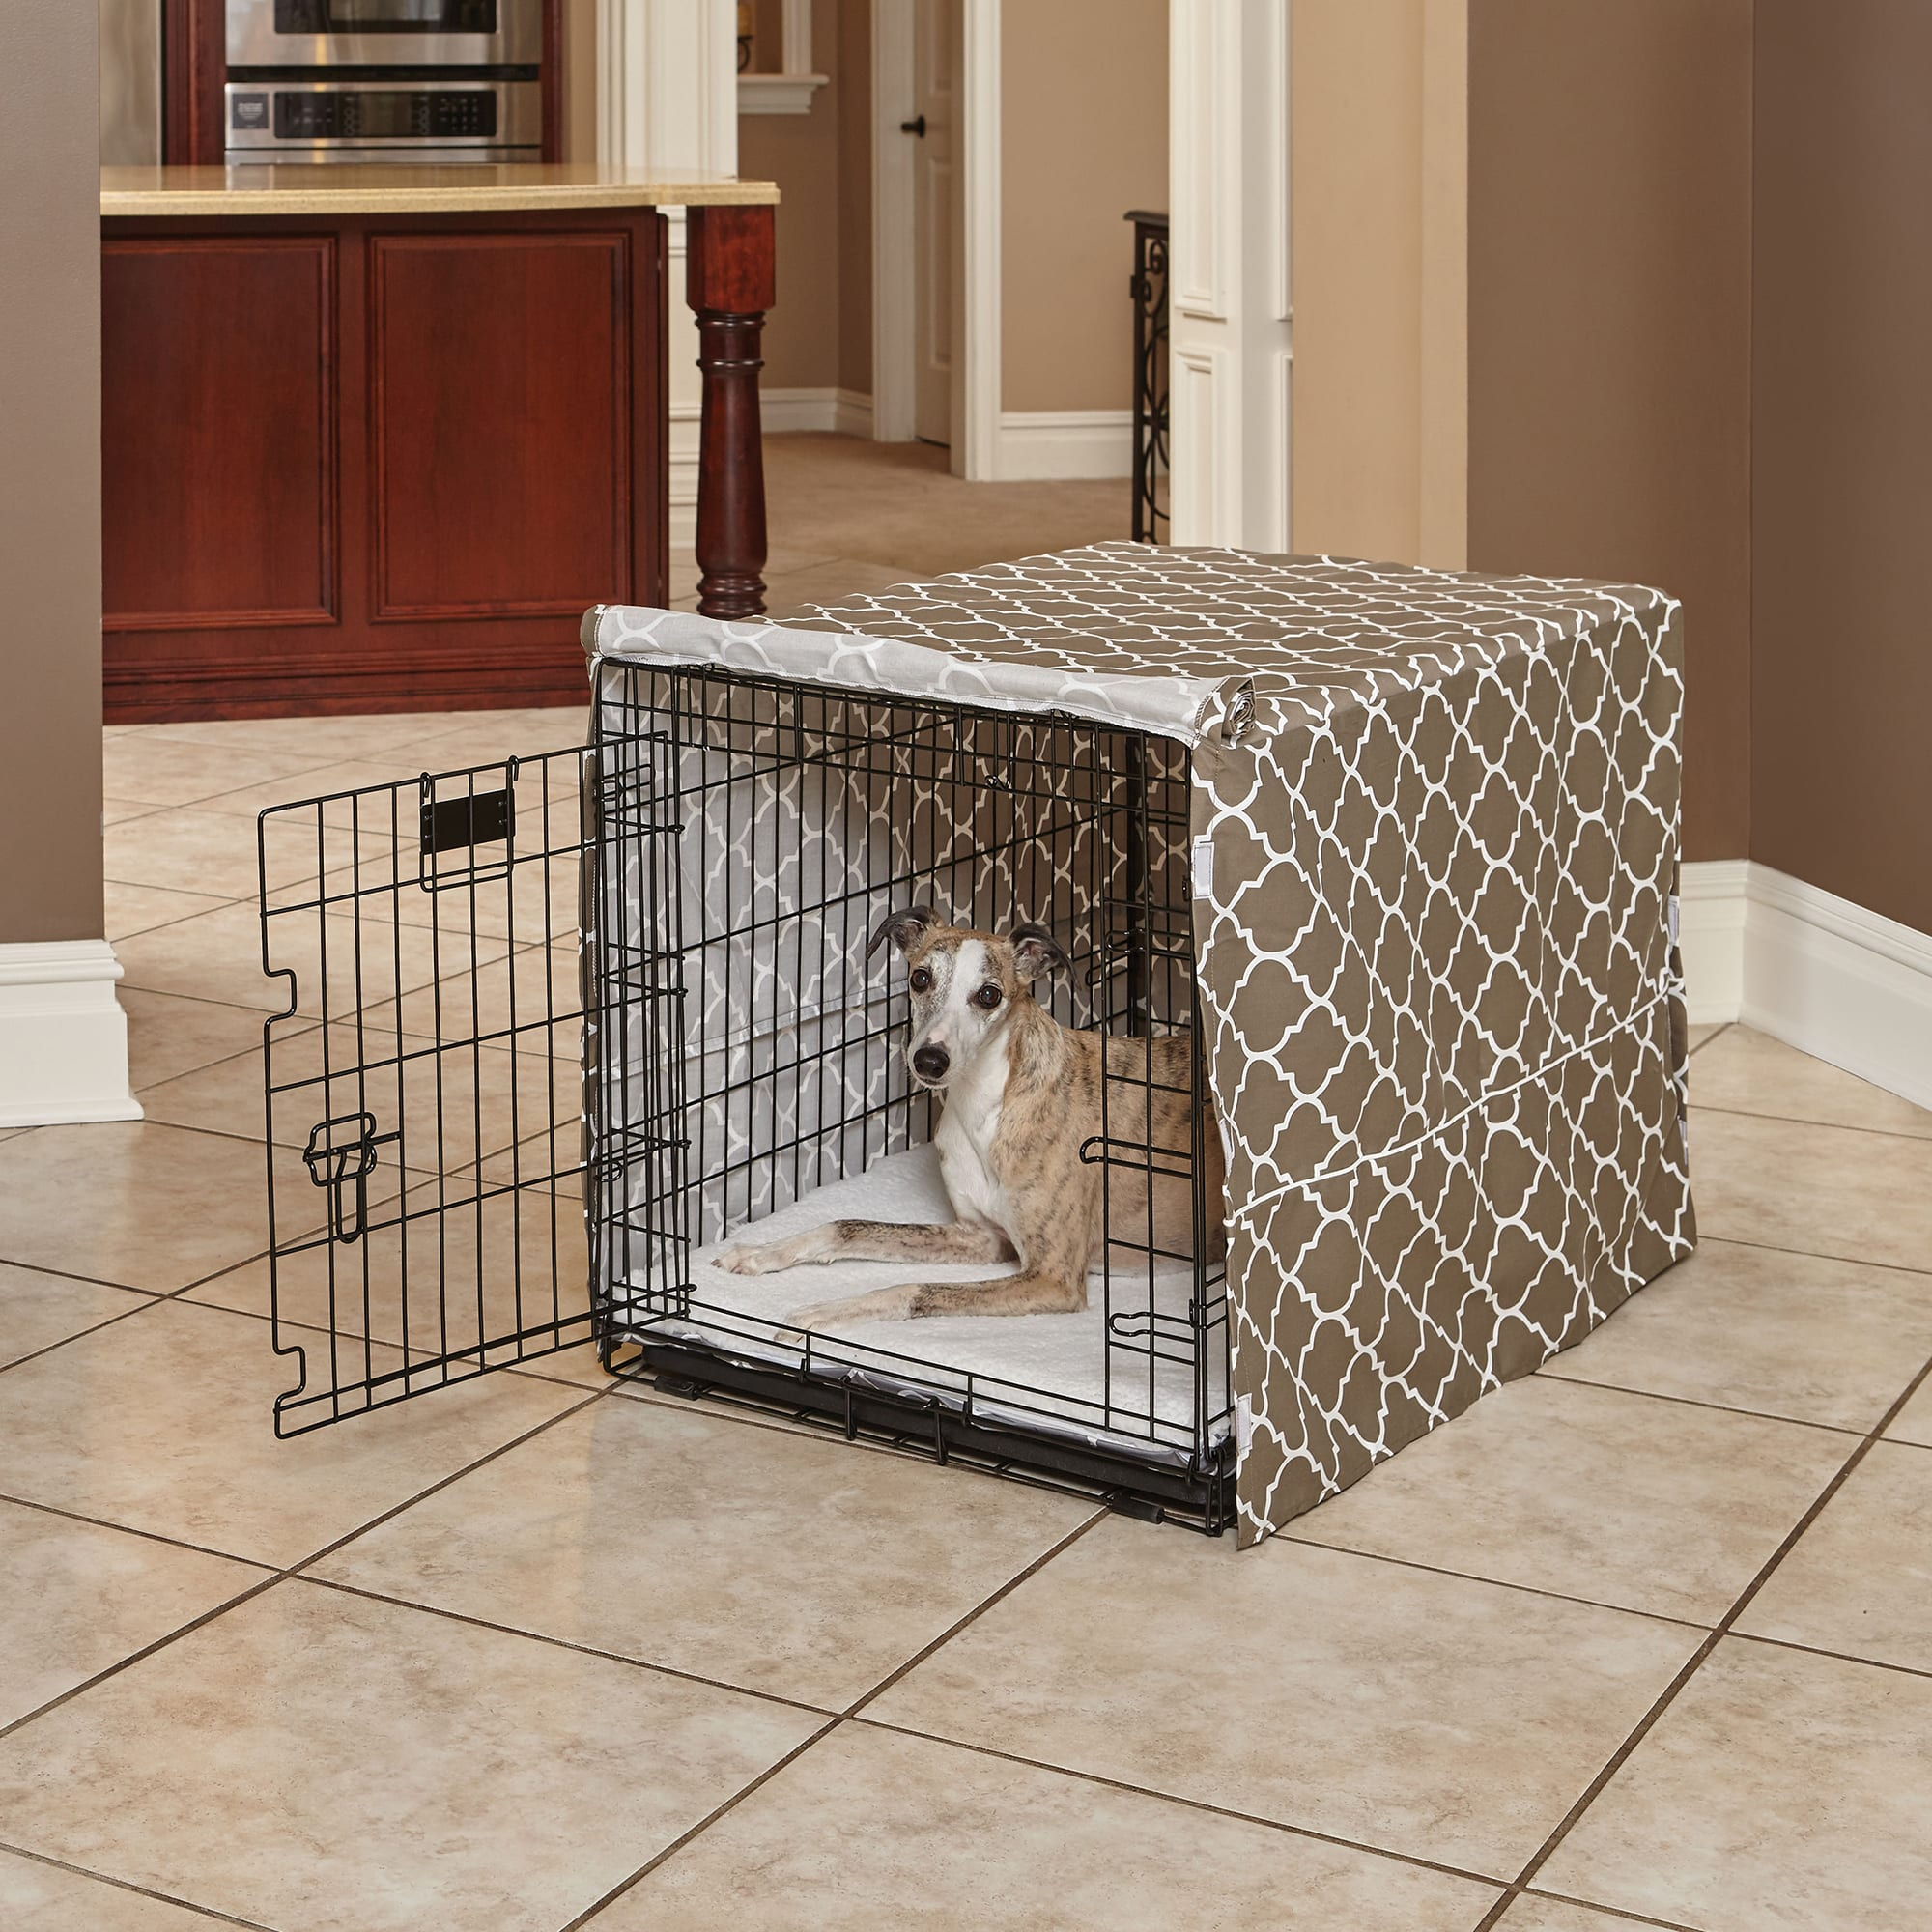 thumbnail 14 - Midwest-Quiet-Time-Defender-Brown-Crate-Cover-for-Dogs